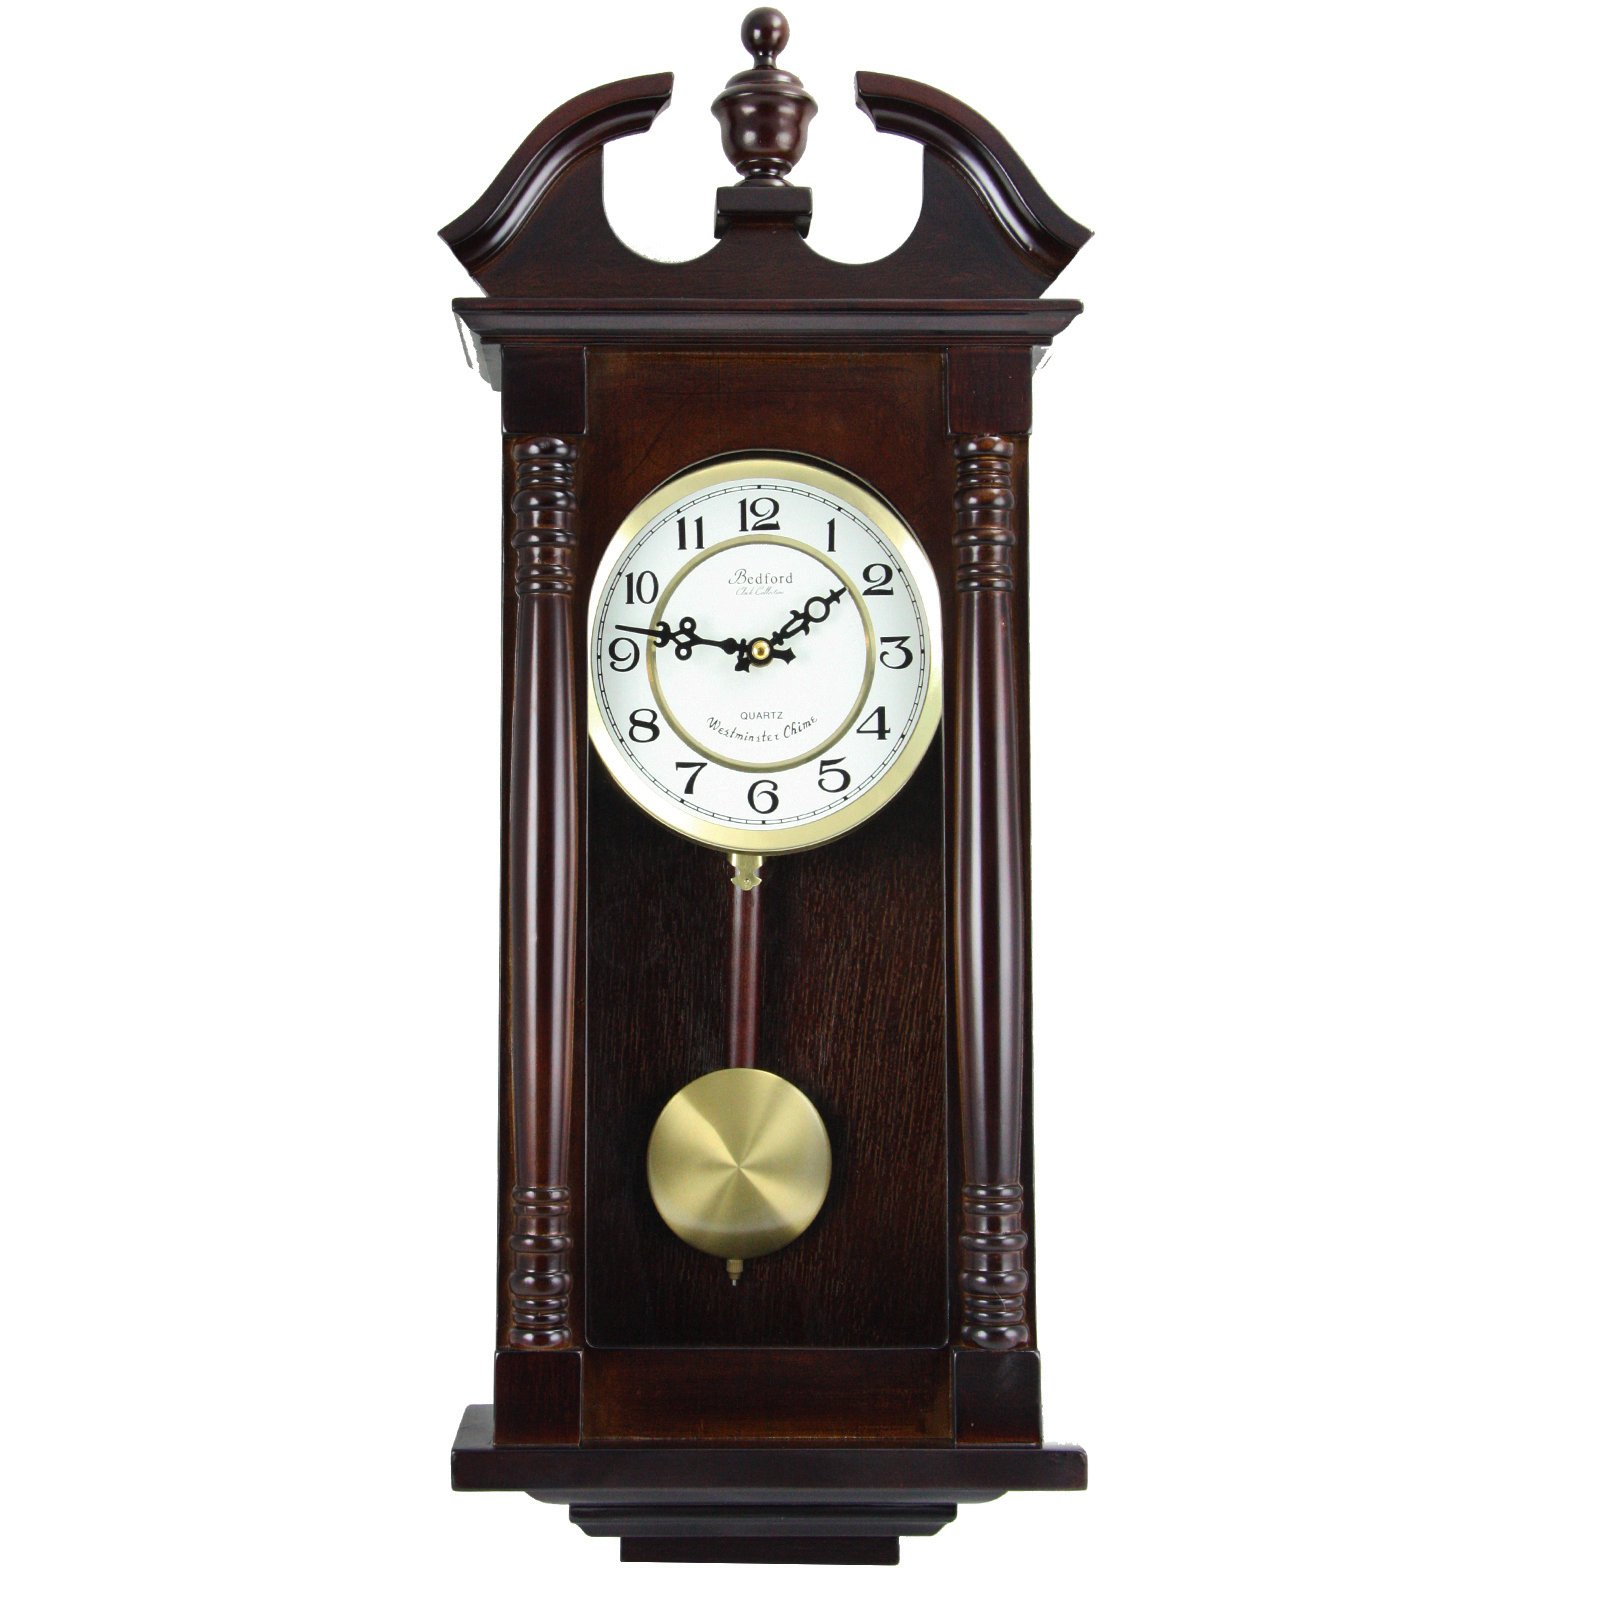 Bedford Clock Collection 27.5'' Classic Chiming Wall Clock With Swinging Pendulum in Cherry Oak Finish